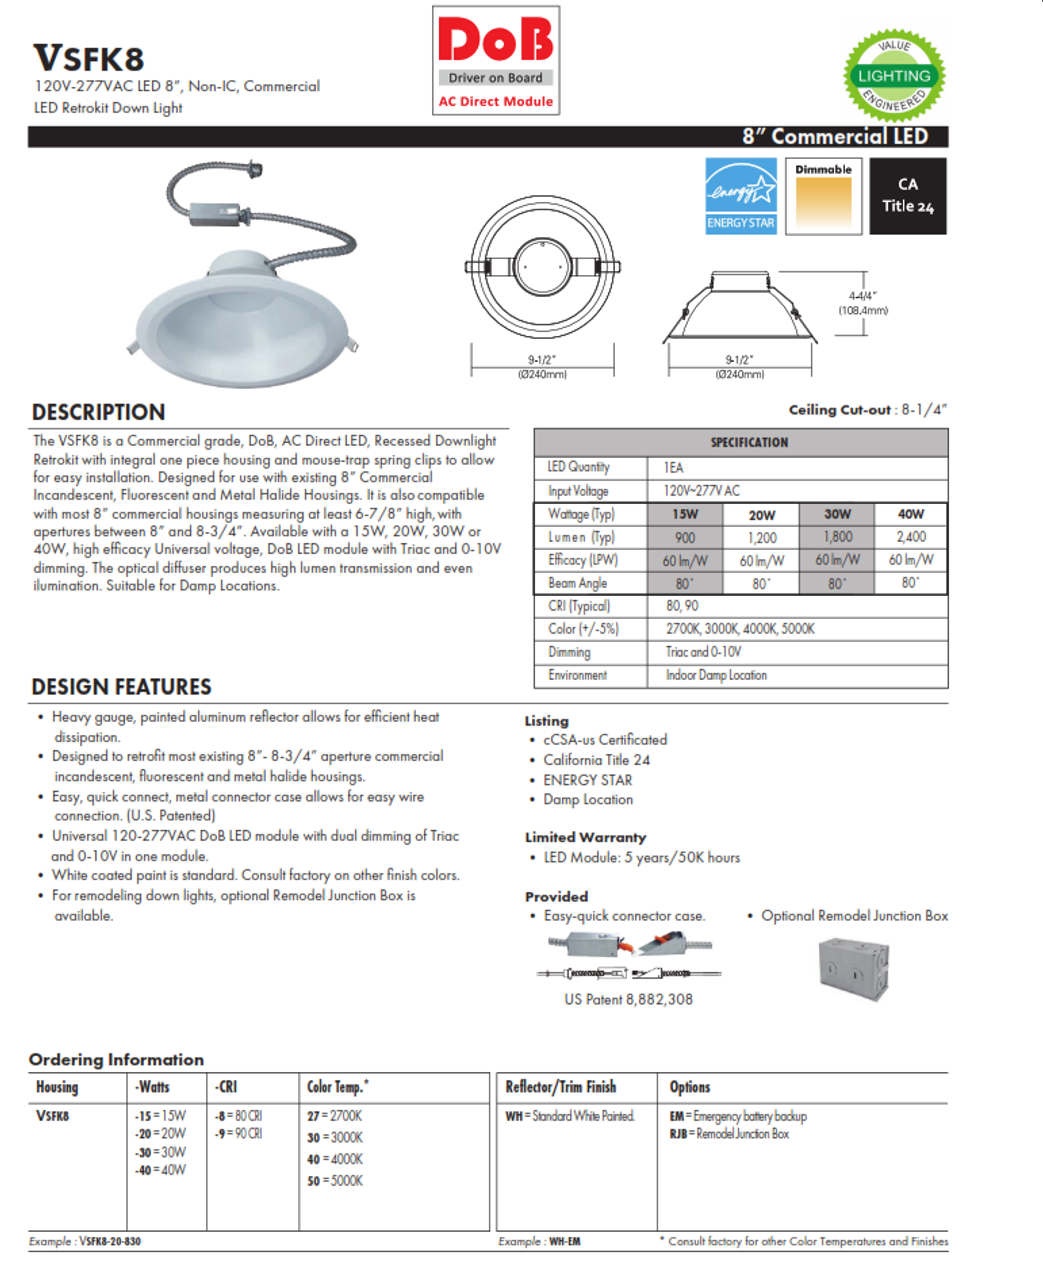 VSFK8 is a Commercial grade, DoB, AC Direct LED, Recessed Downlight Retrokit with integral one piece housing and mouse-trap spring clips to allow for easy installation